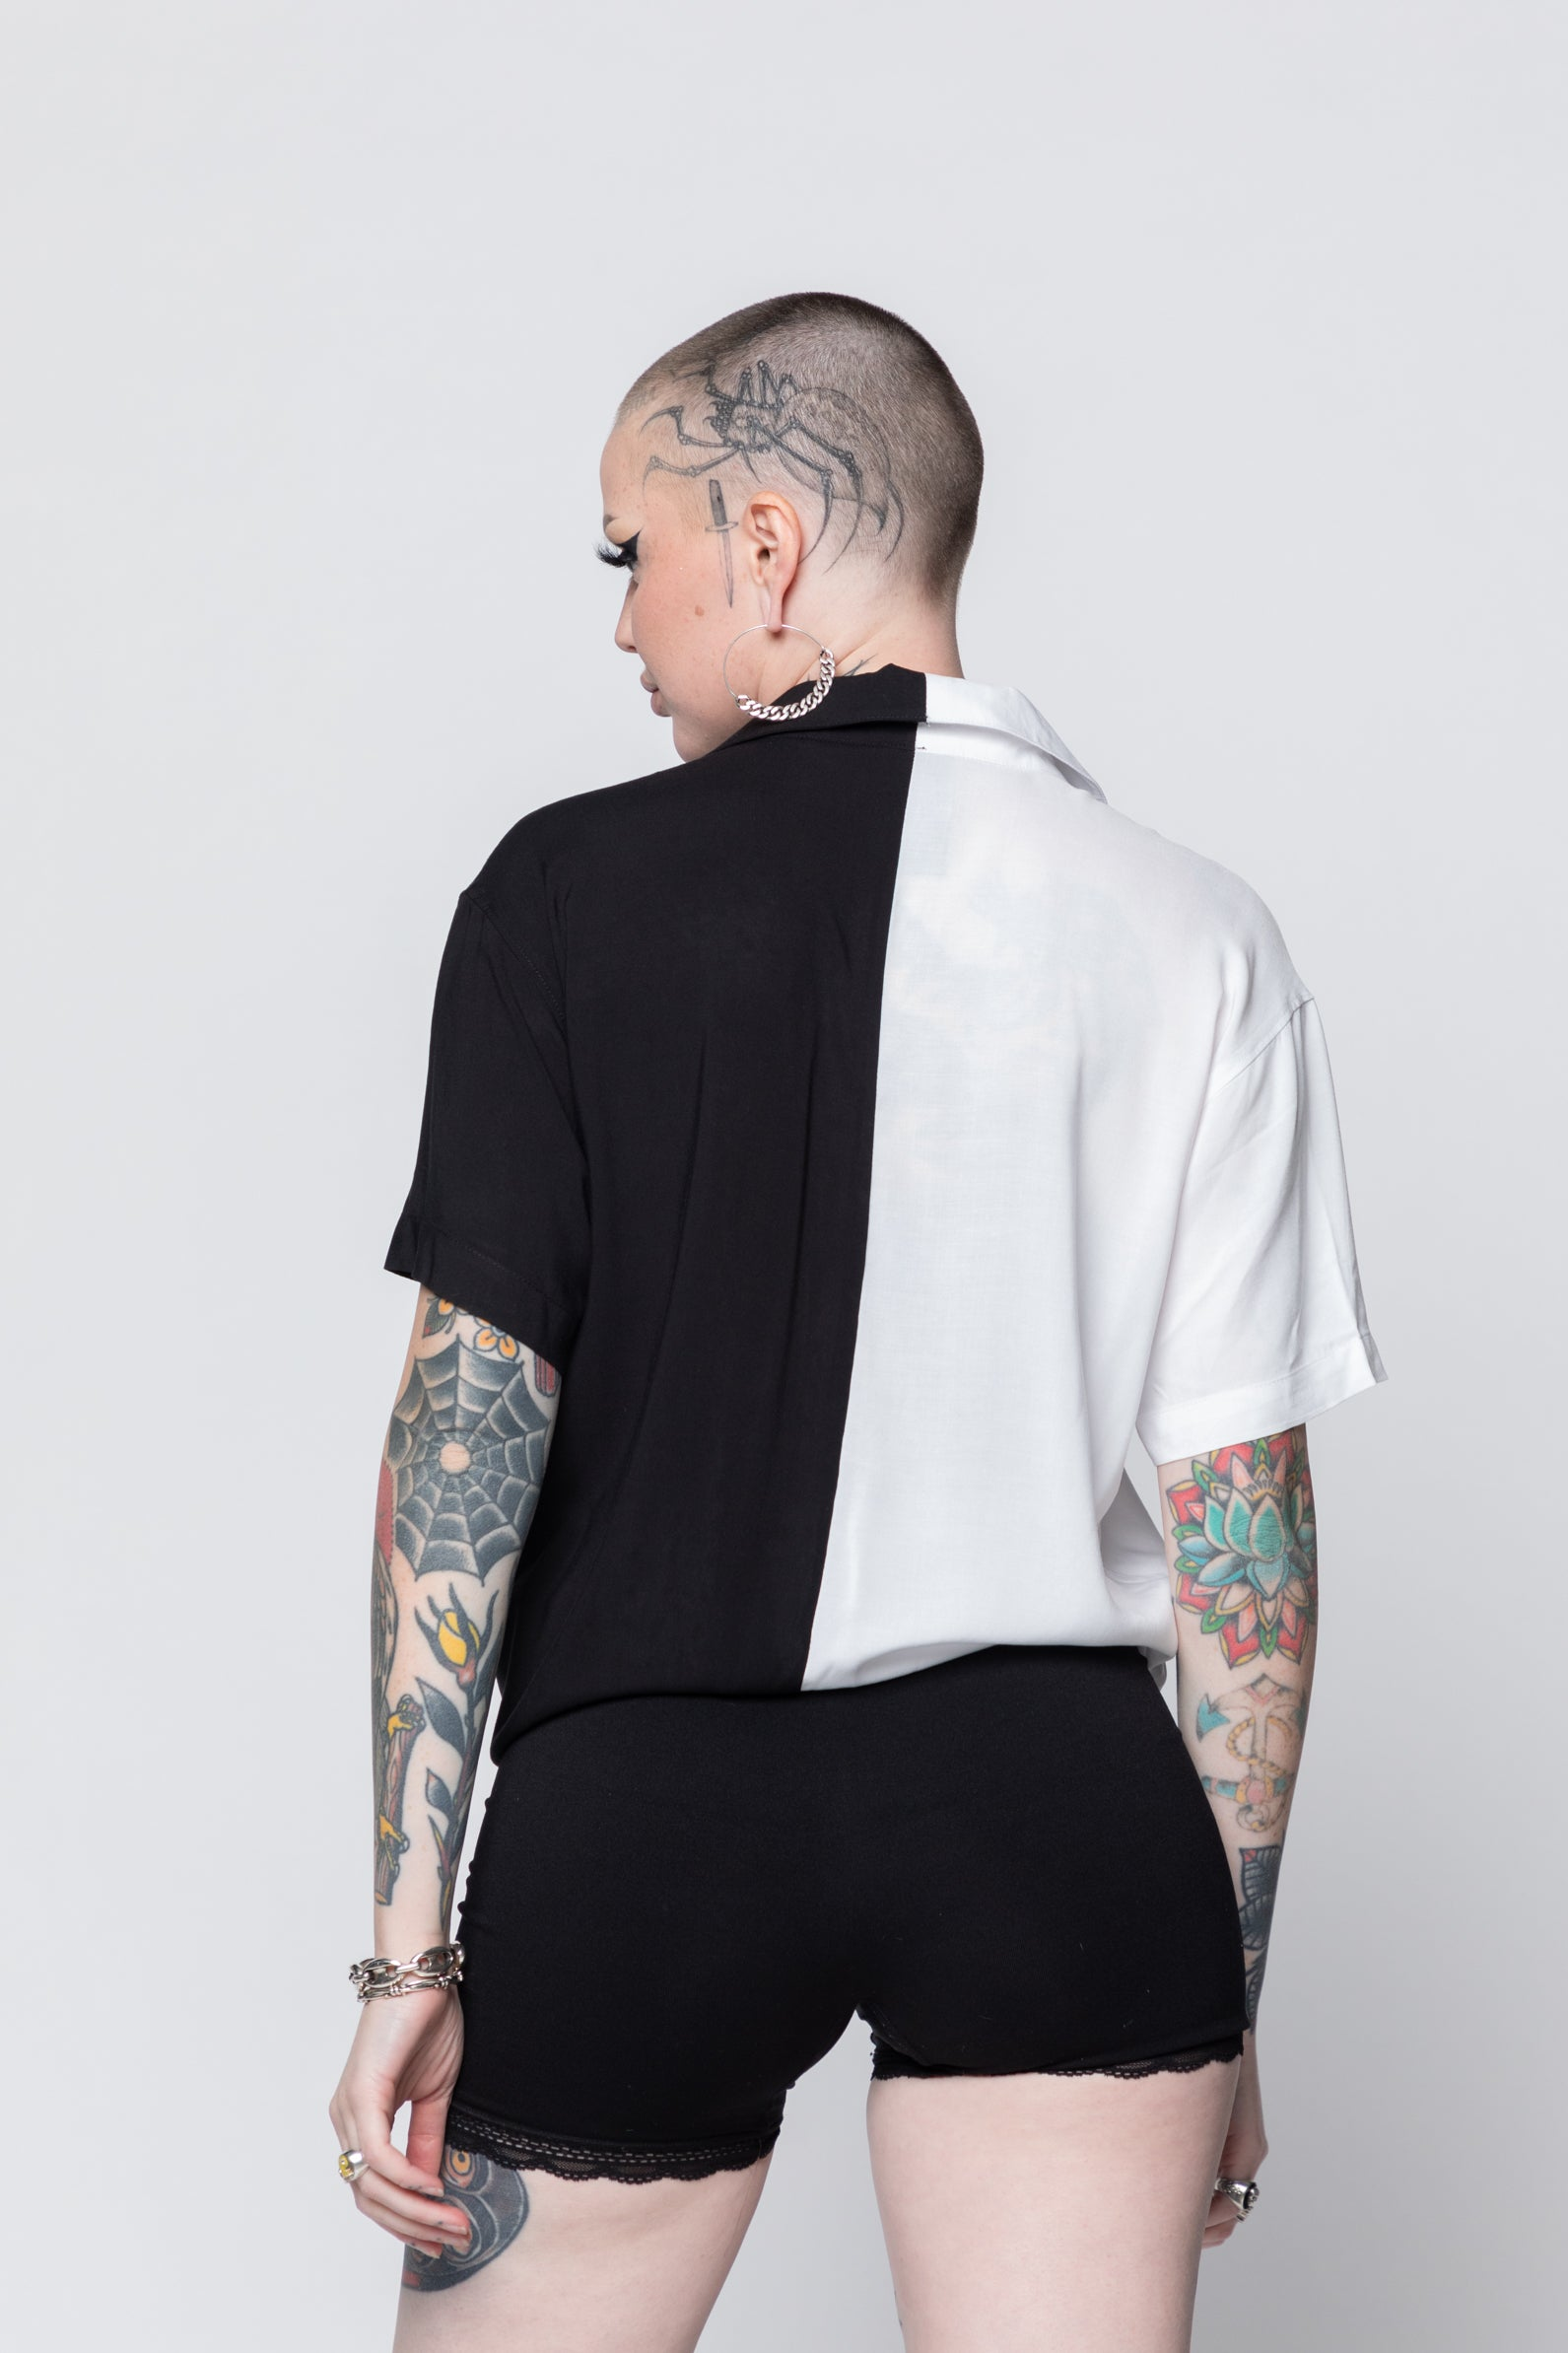 Eternal Split S/S Woven Top